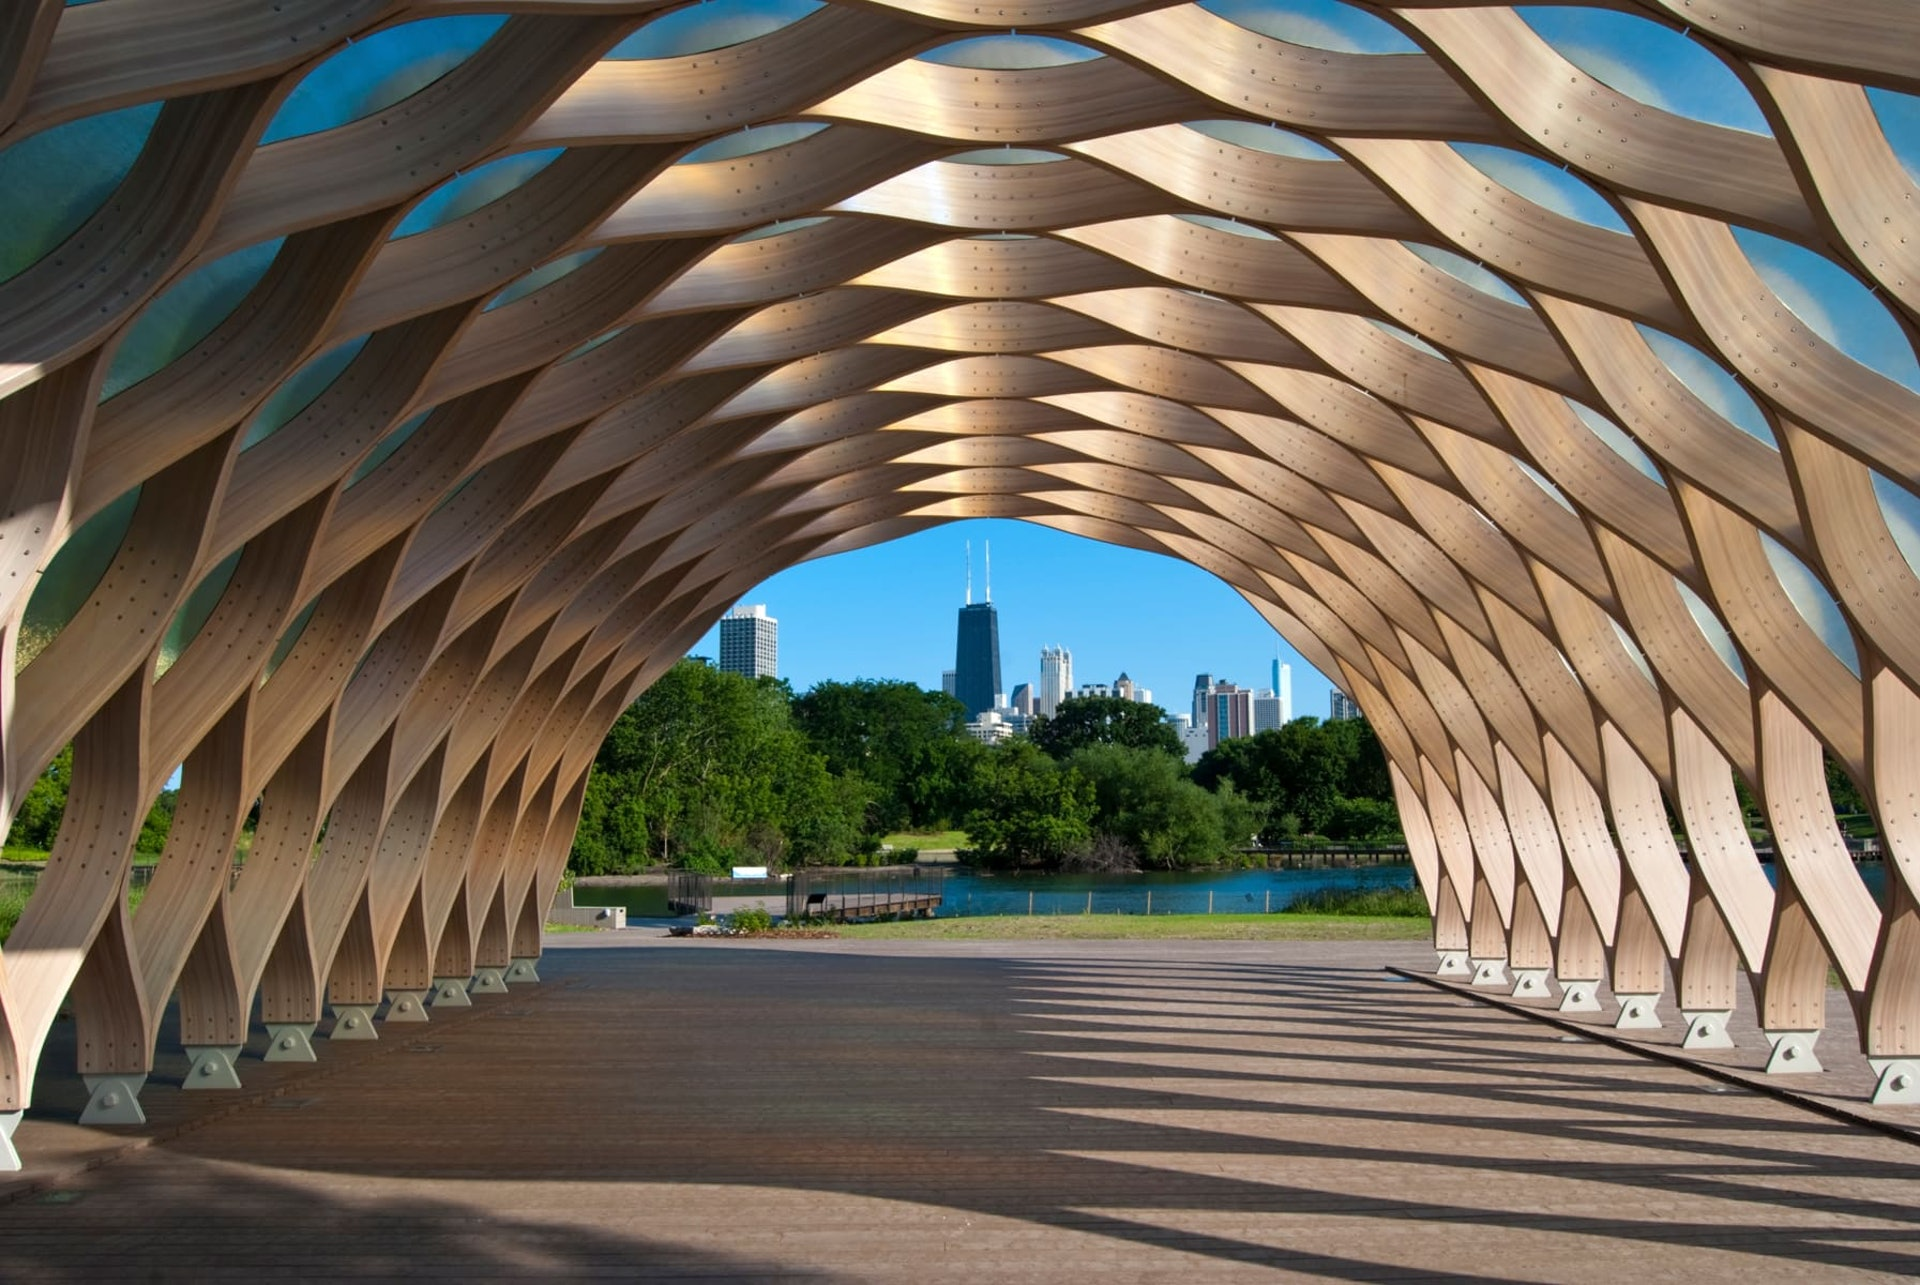 South Pond Pavilion sculpture, Chicago